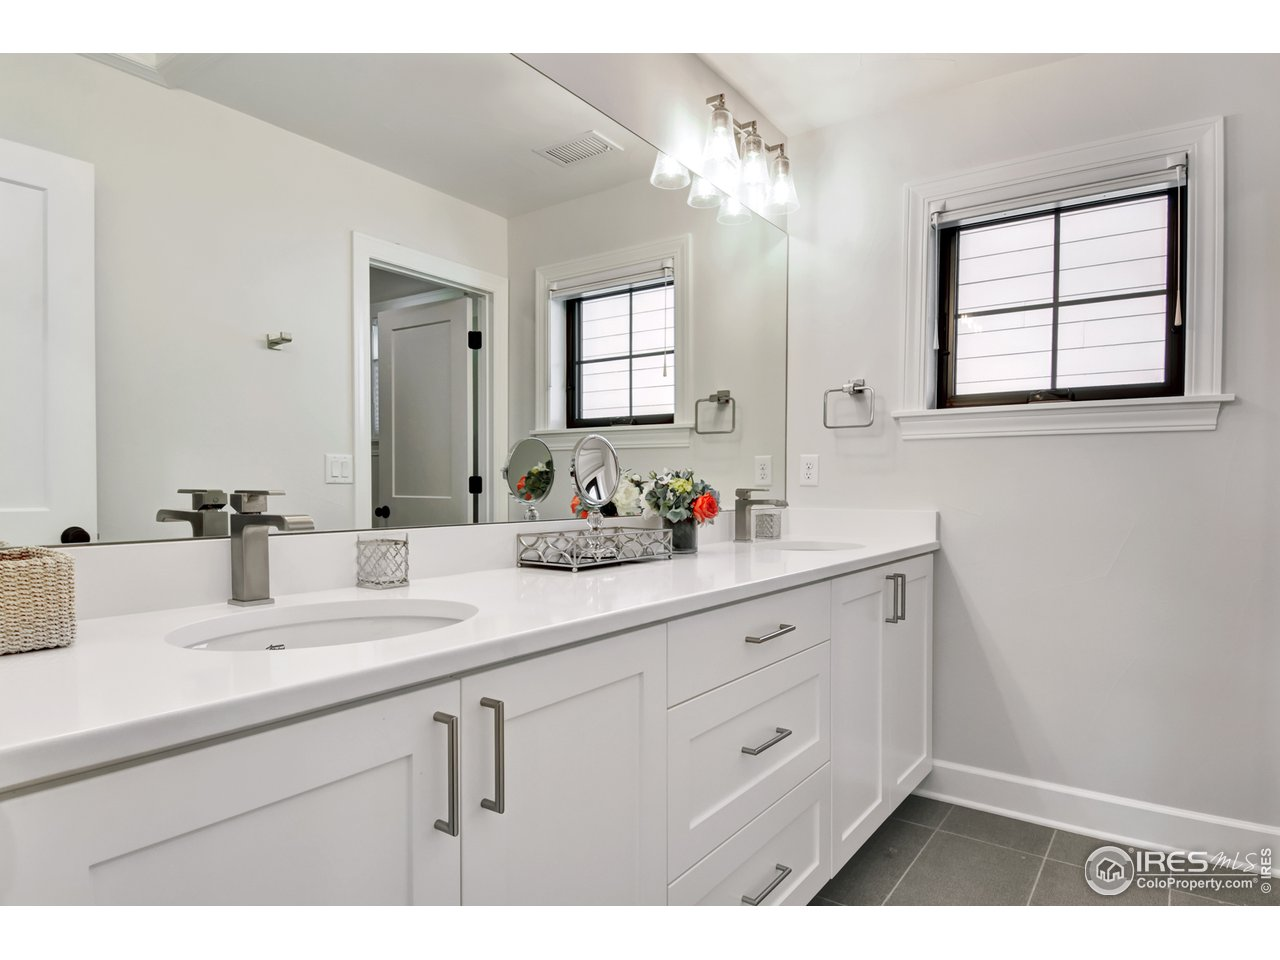 Shared 2nd Floor Bath w/ Dual Vanity